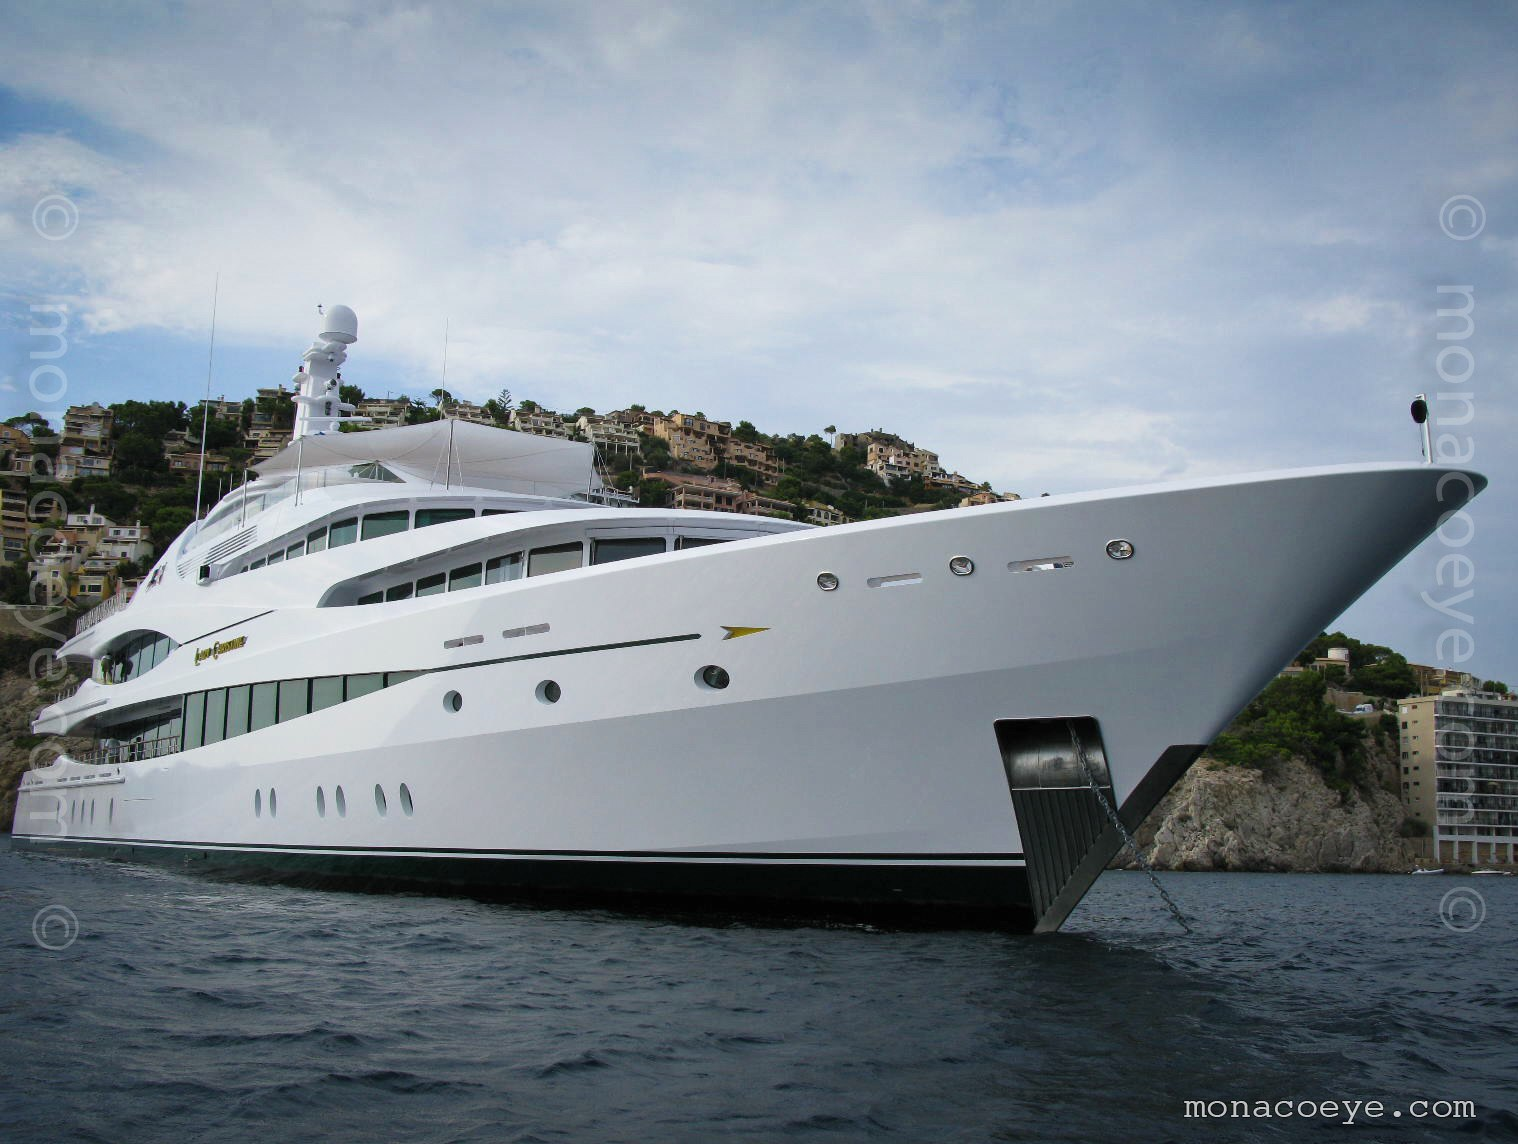 Lady Christine yacht. Built by Feadship, delivered in 2010, 68 metres, build number 801